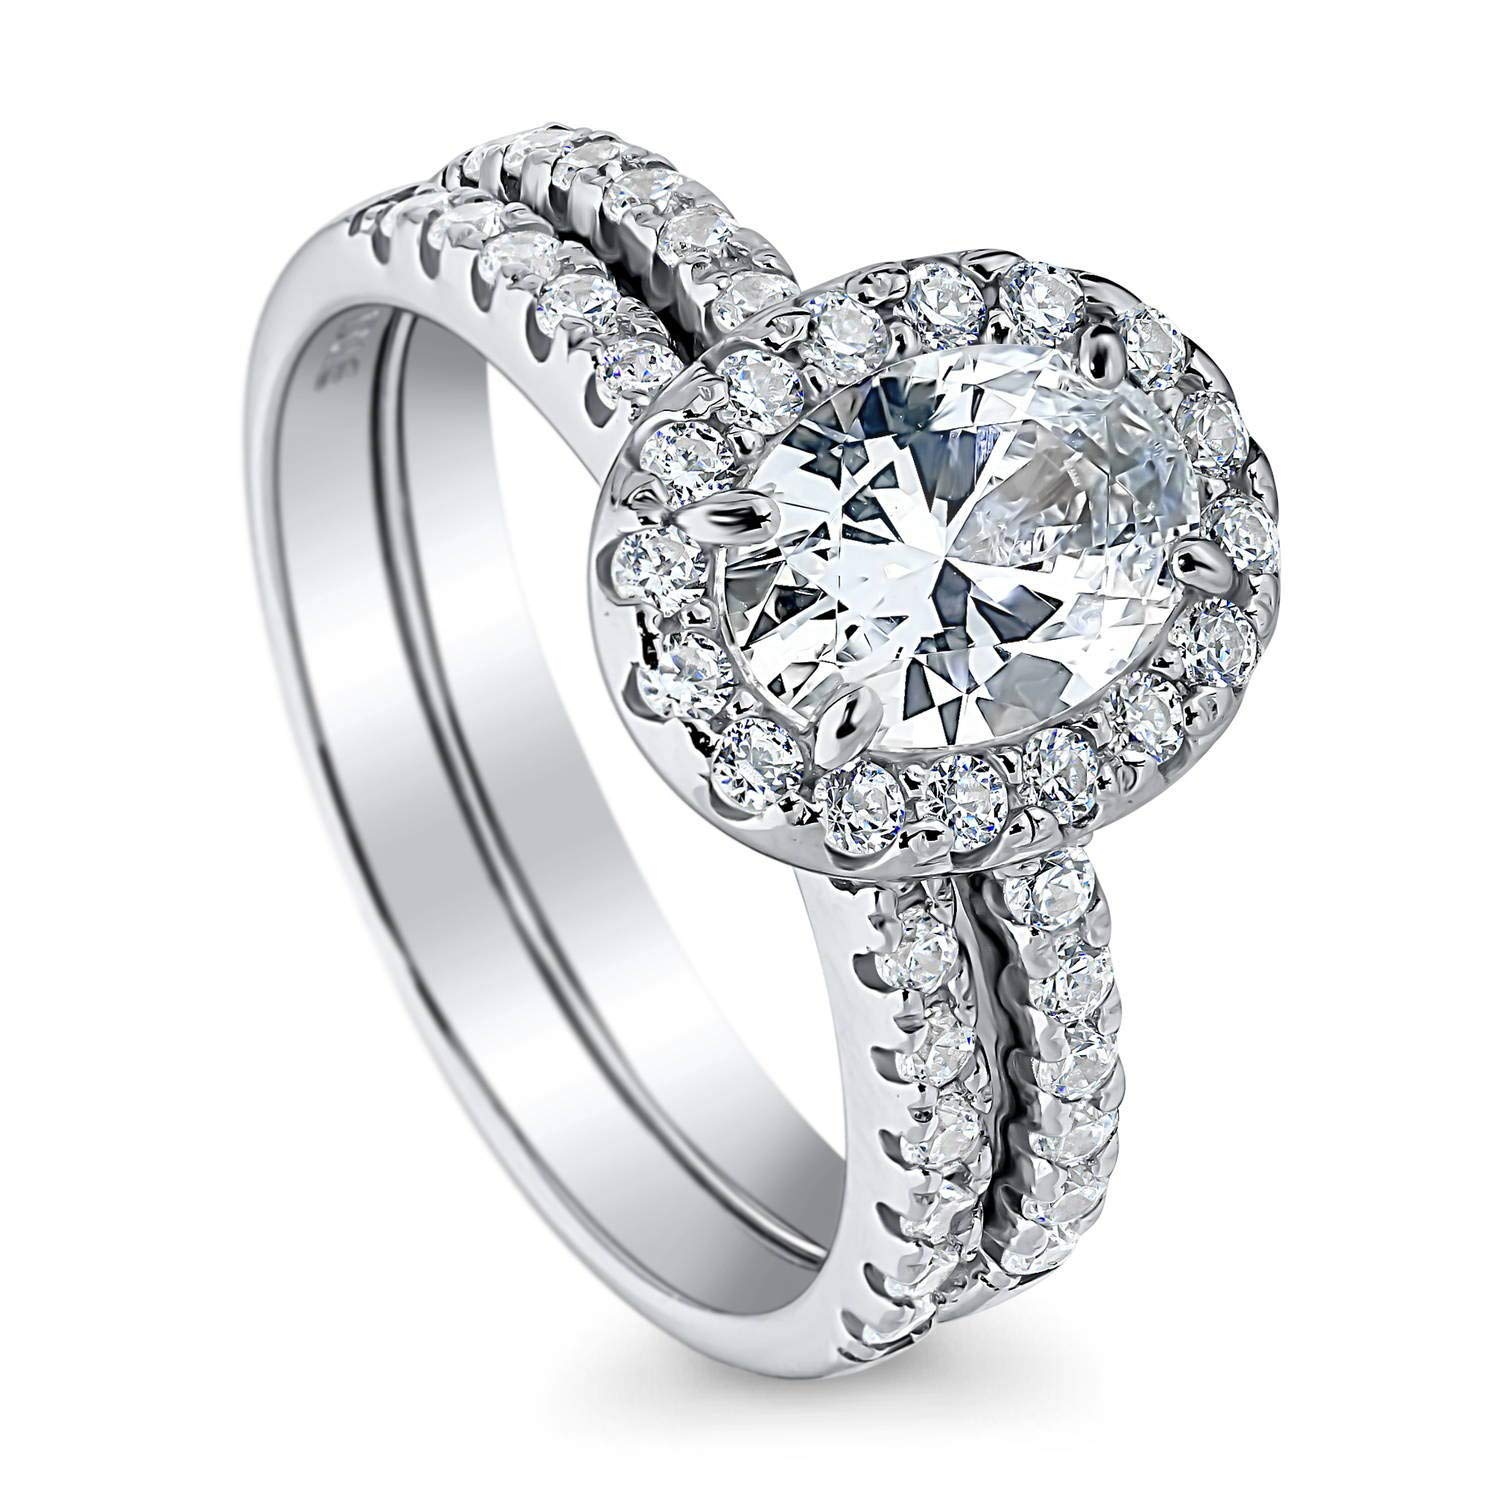 BERRICLE Rhodium Plated Sterling Silver Halo Engagement Wedding Ring Set Made with Swarovski Zirconia Oval Cut 1.87 CTW Size 8